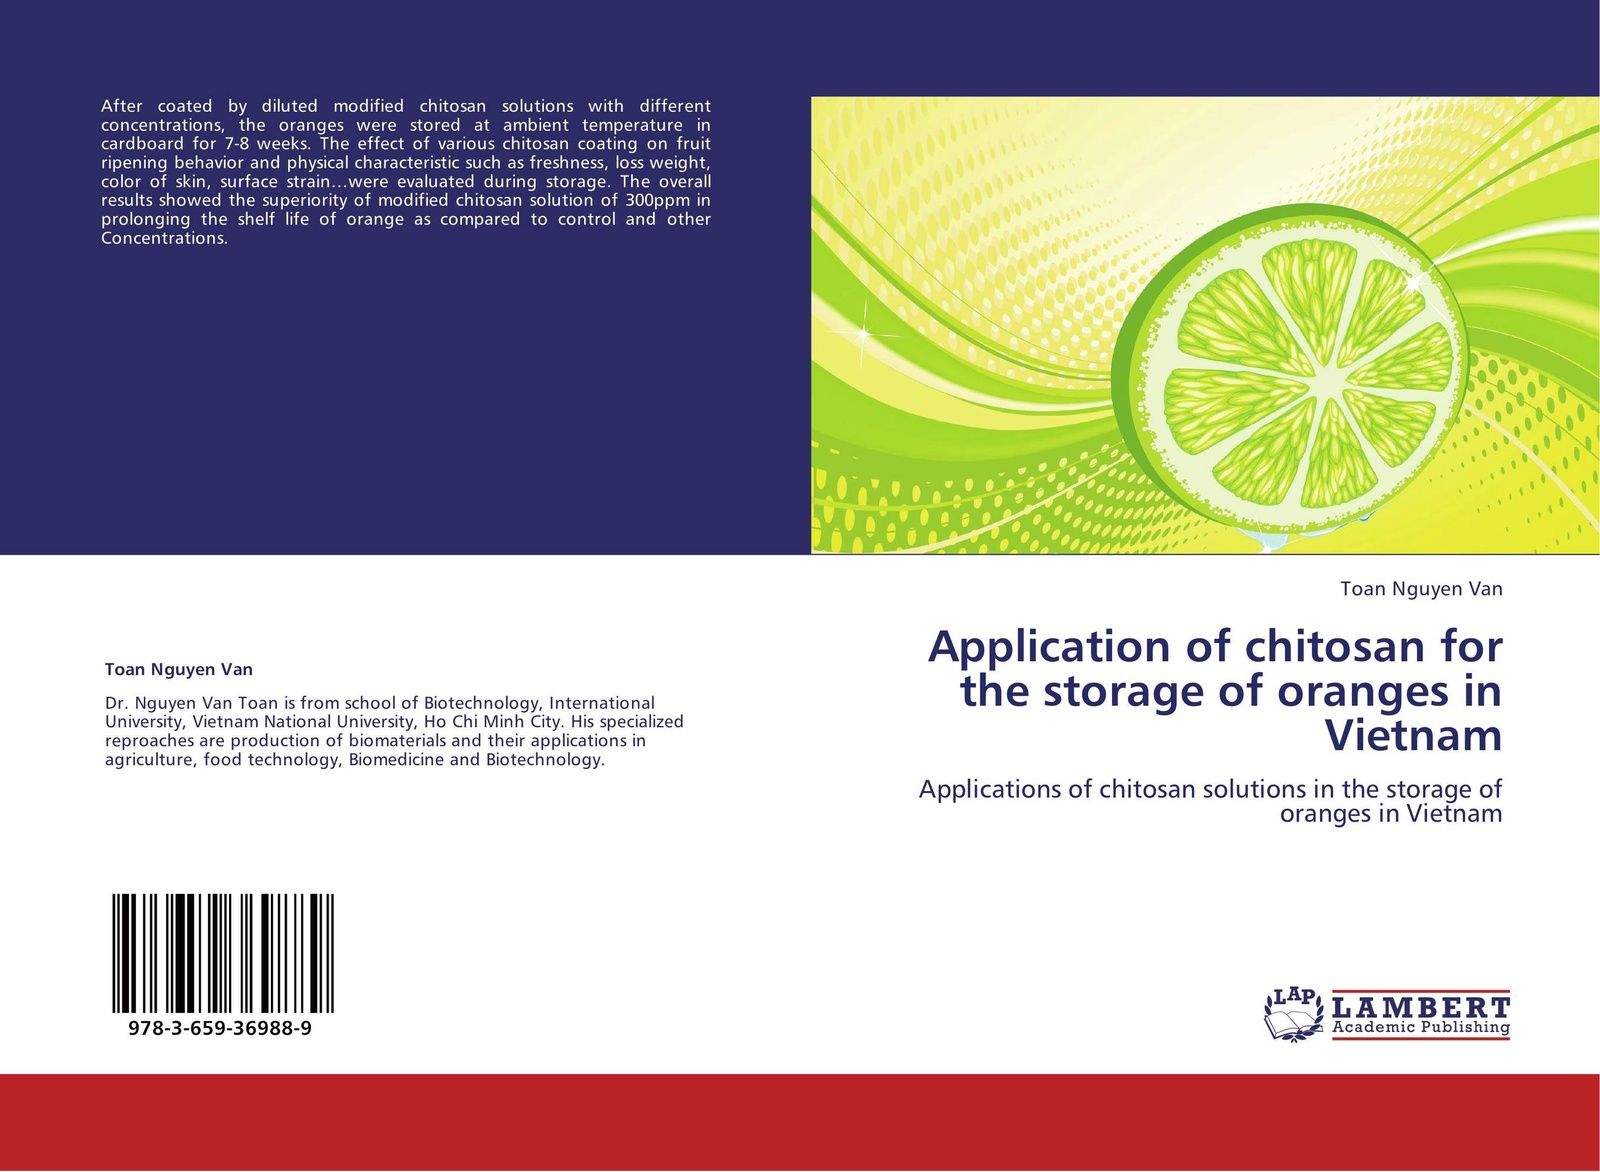 Toan Nguyen Van Application of chitosan for the storage of oranges in Vietnam